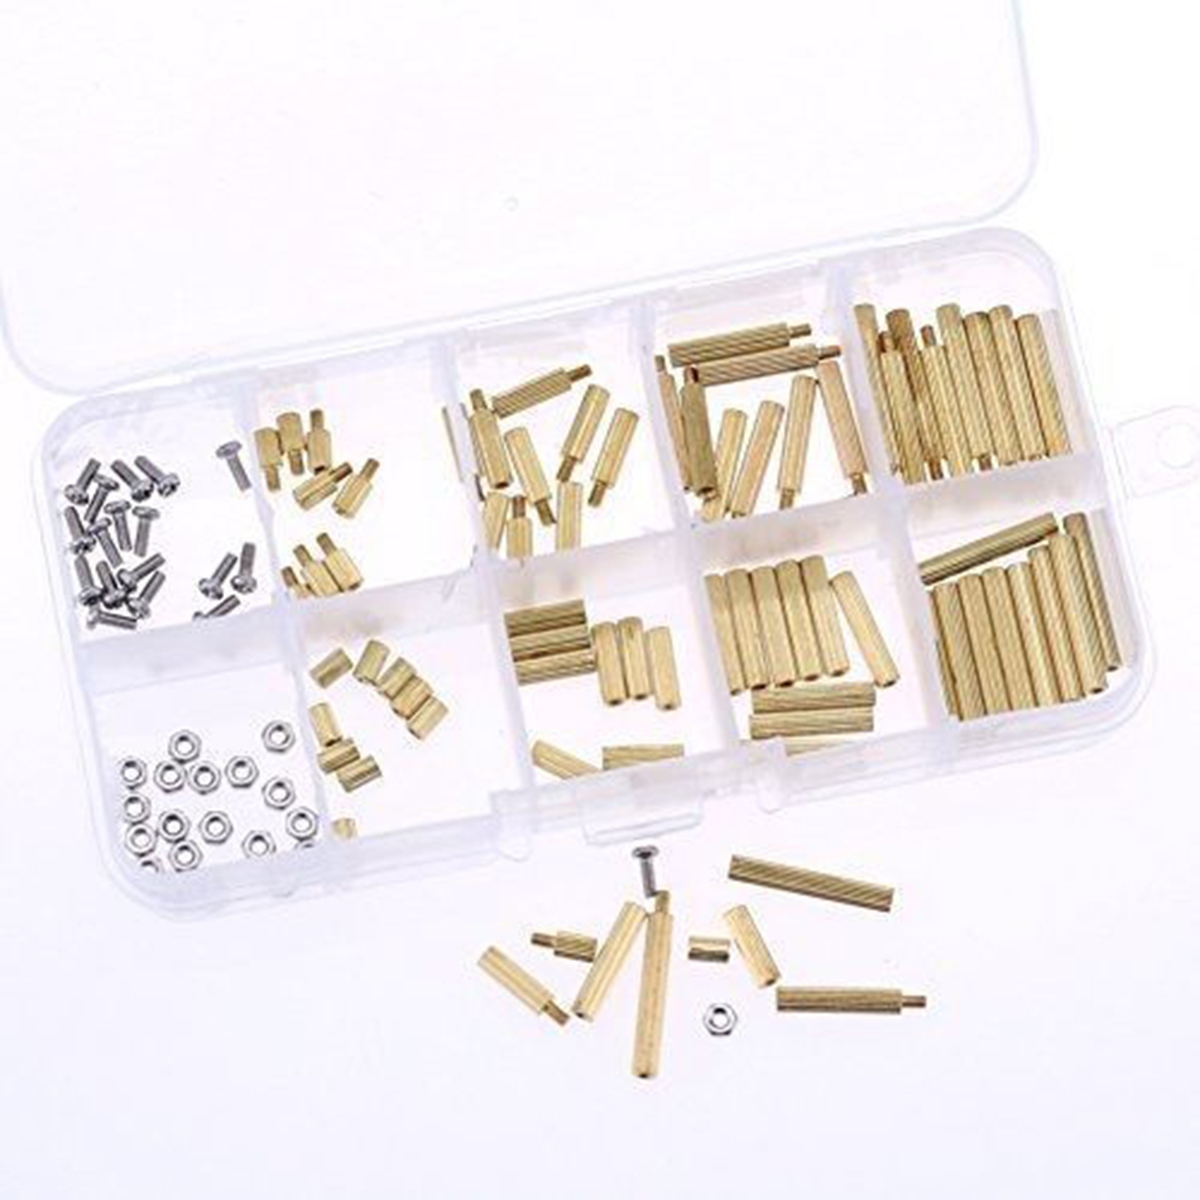 120pcs Assorted M2 Male Female Brass Spacers Standoff Pcb Board M3 Copper Silver Pillars Circuit Nut Screw Set For Hardware Accessories